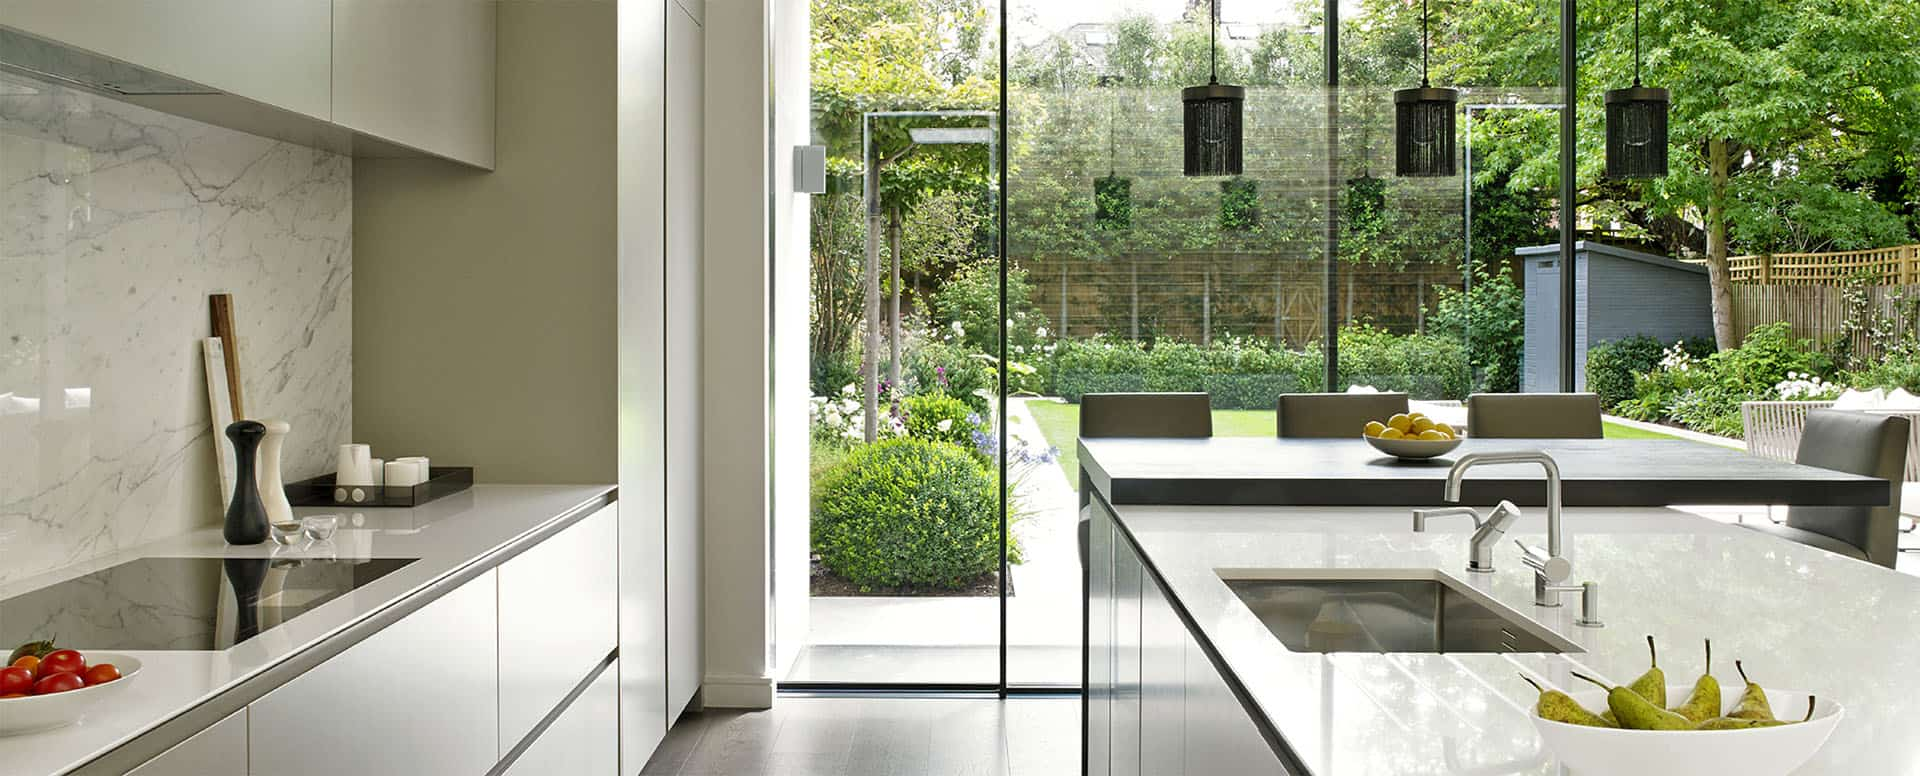 Grey modern family Kitchen, Wandsworth - island, breakfast bar and sliding glass doors into garden